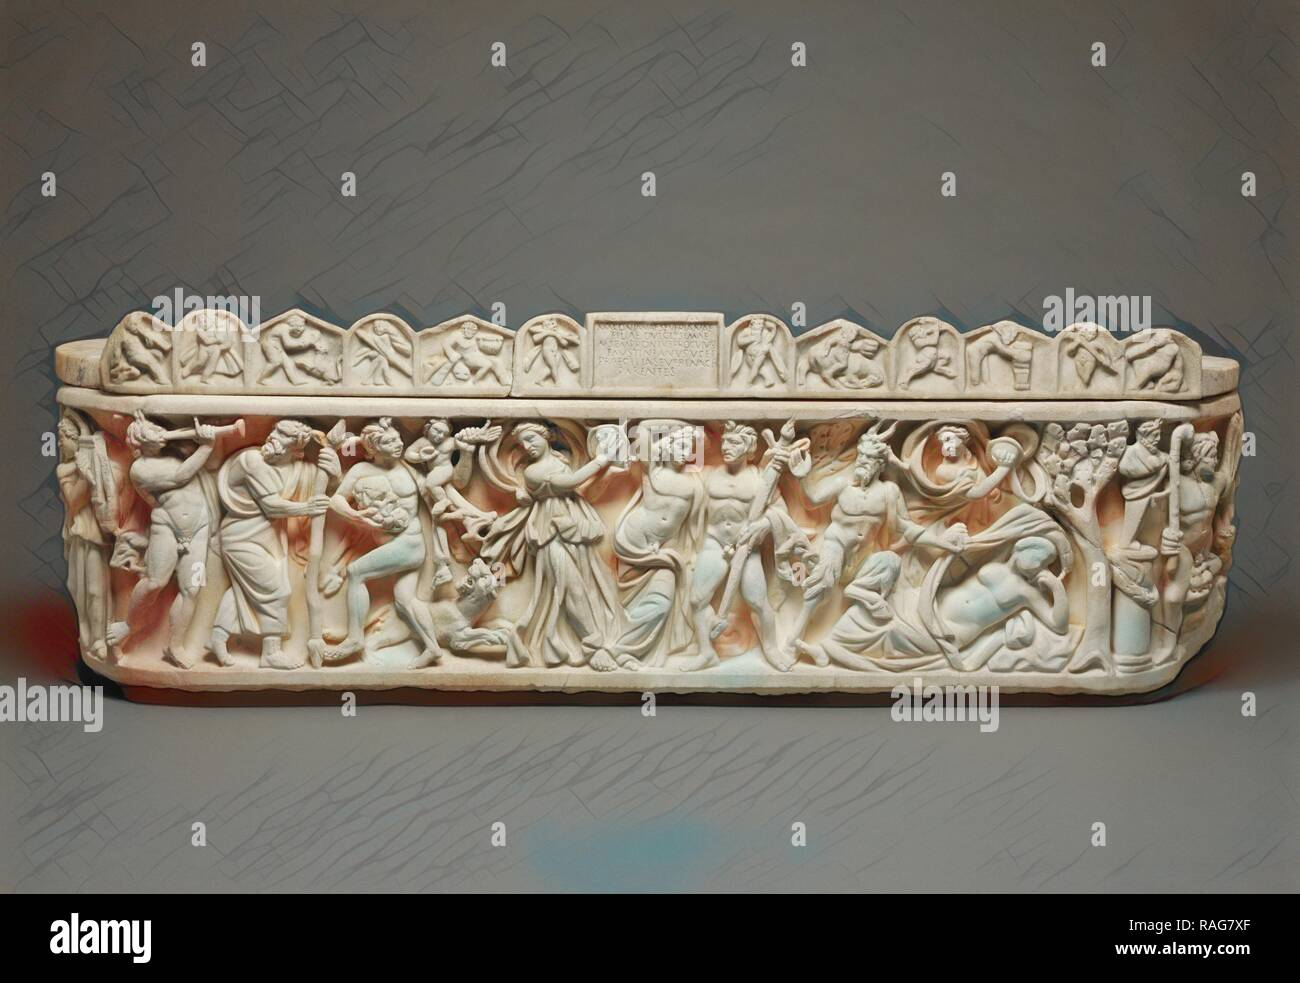 Sarcophagus with Scenes of Bacchus, Roman Empire, A.D. 210–220, Marble. Reimagined by Gibon. Classic art with a reimagined - Stock Image